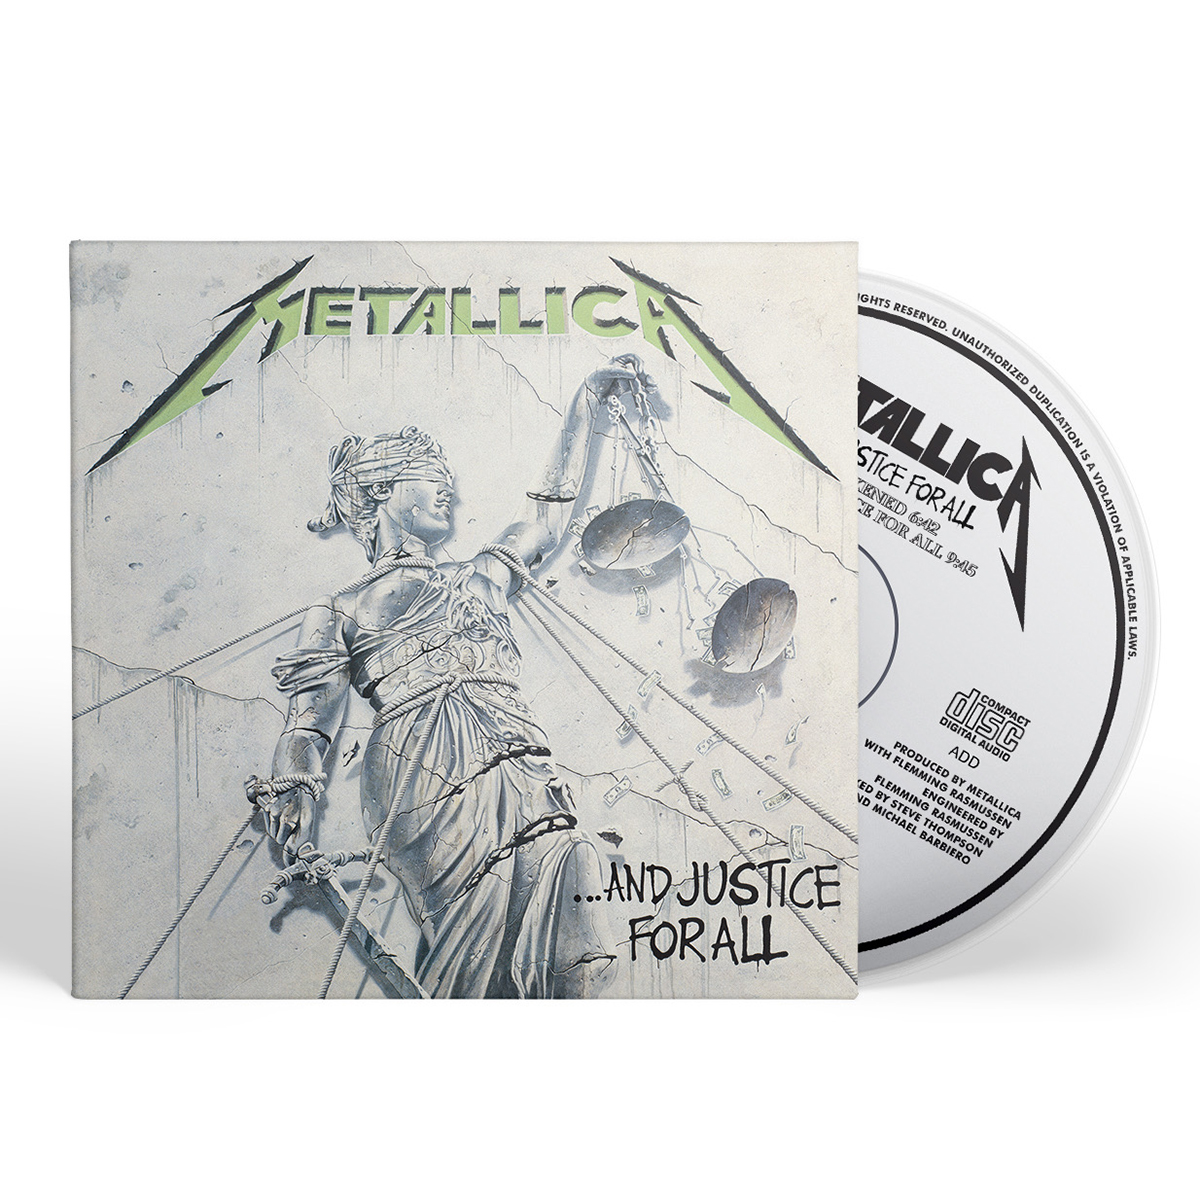 …And Justice For All (Re-Mastered) – CD - Metallica